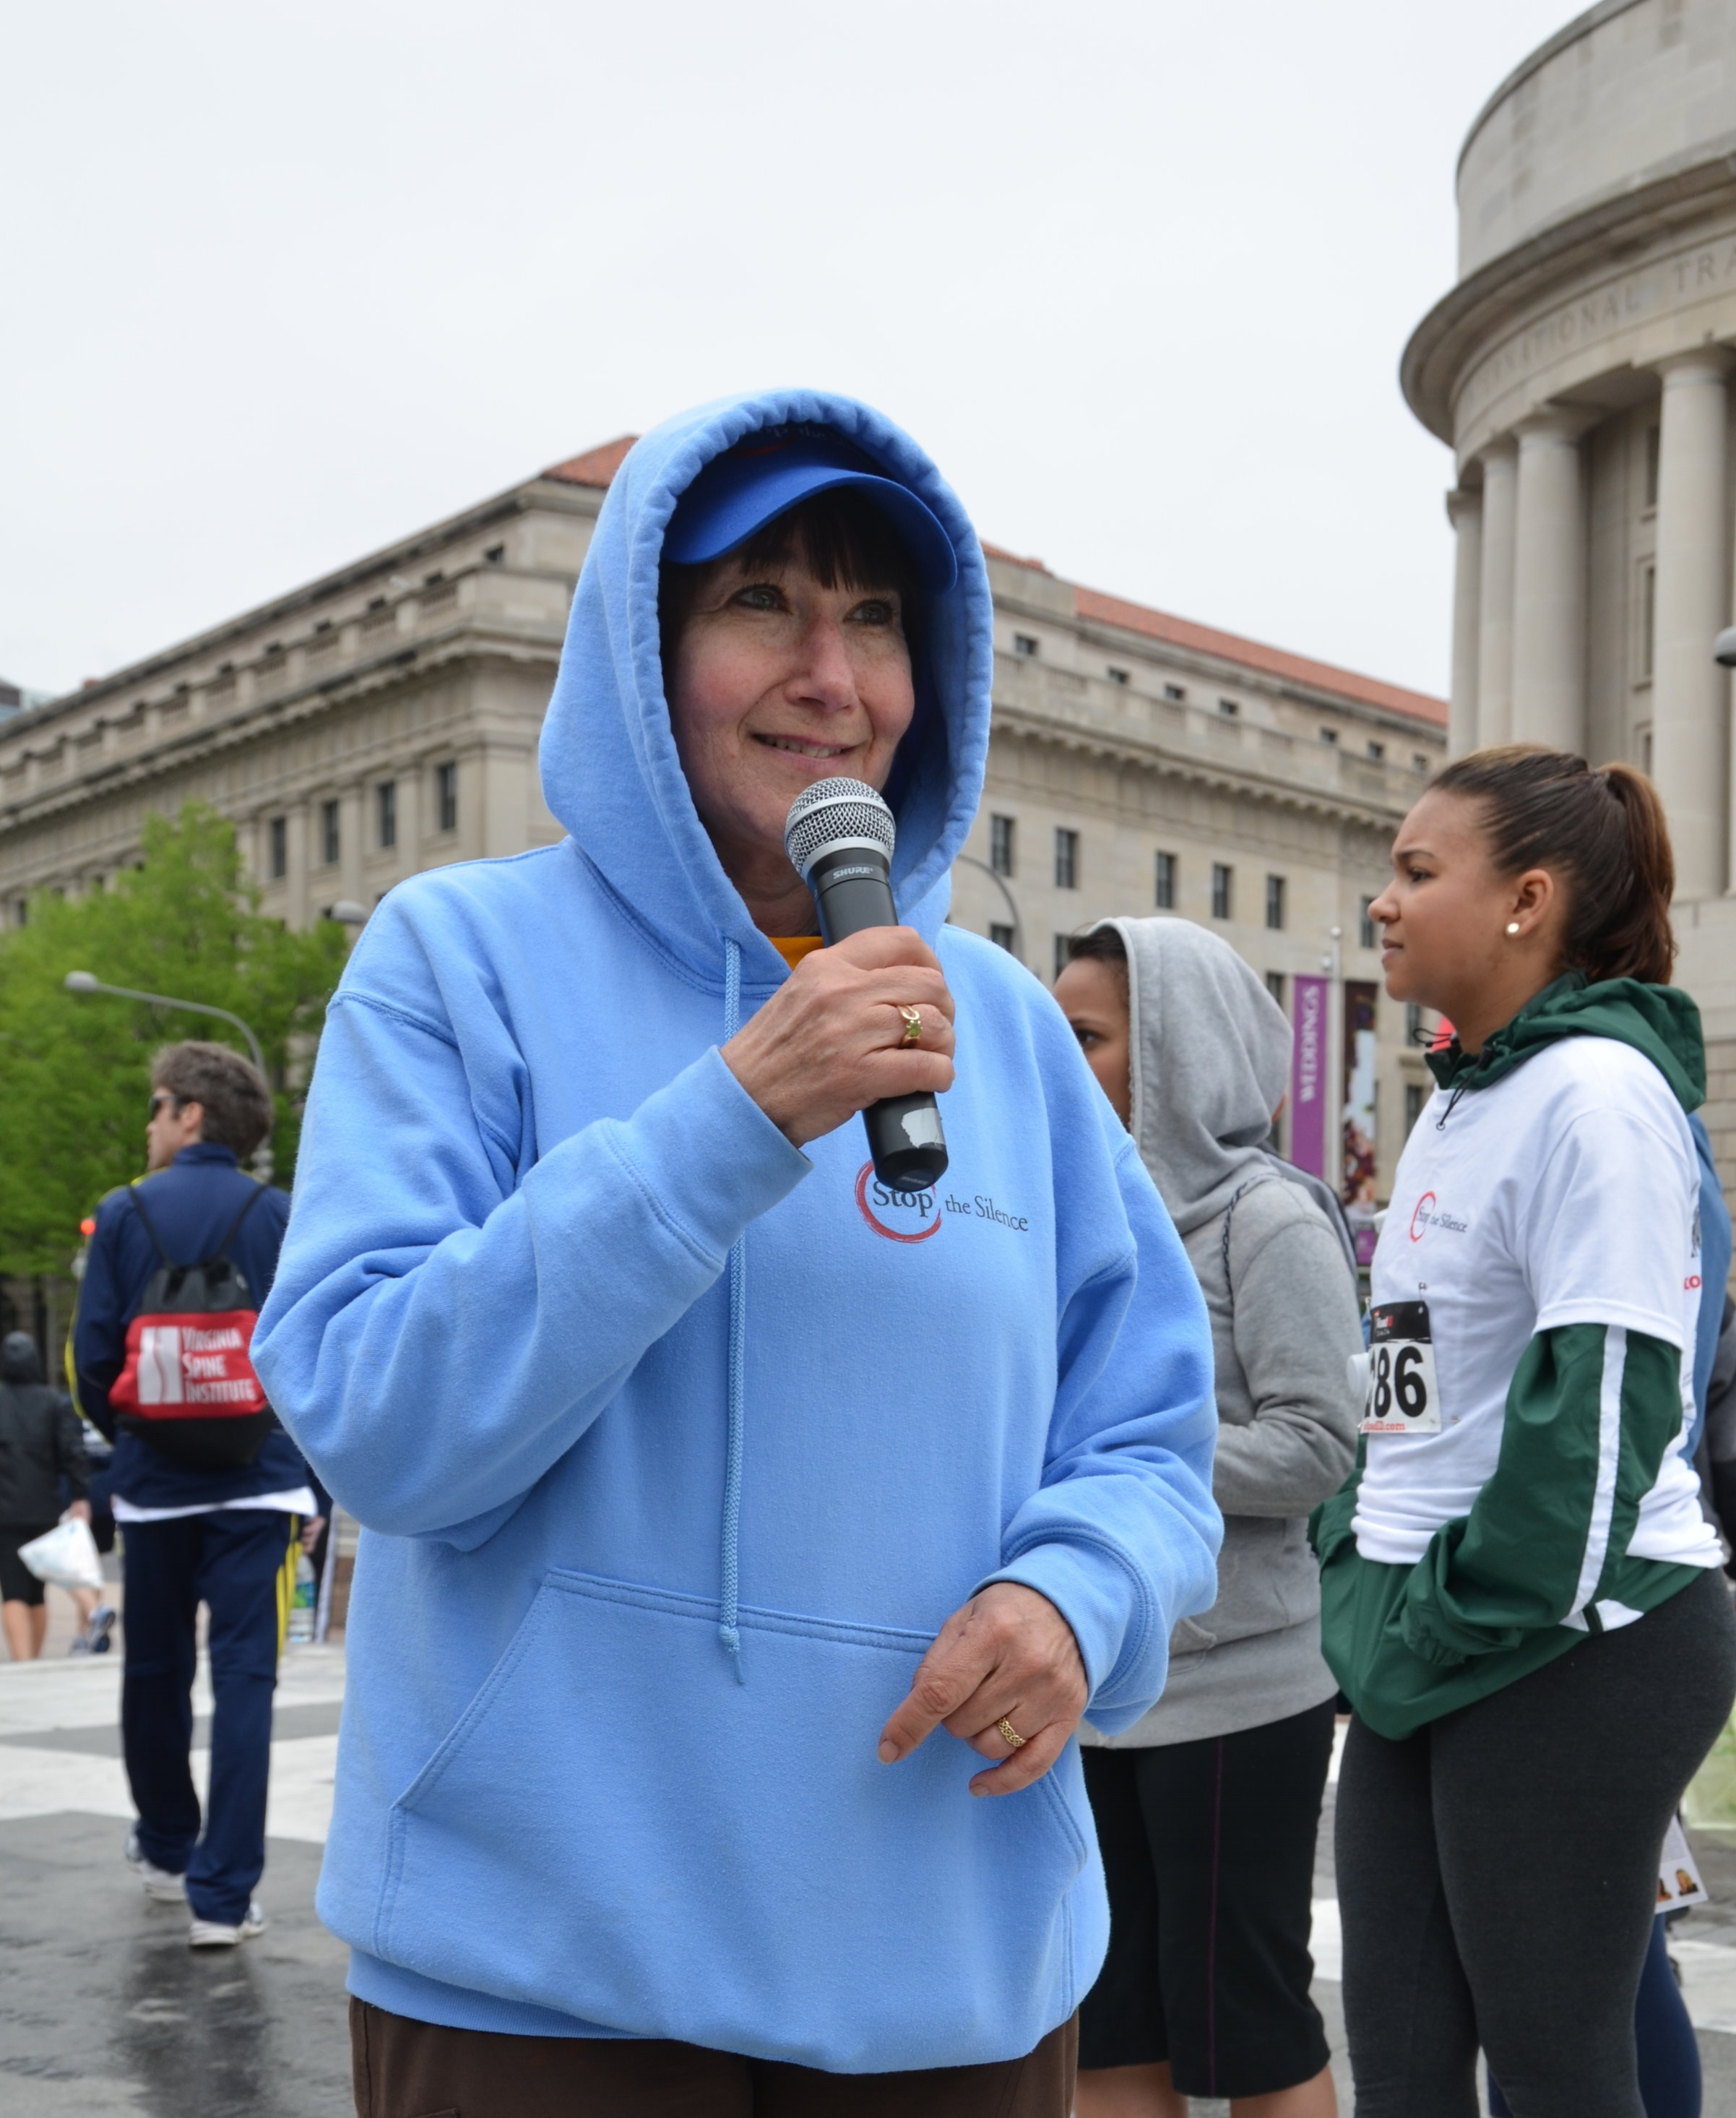 Pamela has organized and presented at numerous events locally, nationally and internationally. Here, she is speaking at the Race (and Walk) to Stop the Silence in 2012. The Race was the result of research she designed and conducted with another professor (Bey Ling Sha, UMD). The Race DC took place for 10 years in the heart of DC and attracted more than 1,200 runners and walkers. Races and Walks have taken and still take place in various states and other countries. These events have provided major advocacy through media and on the streets to increase awareness about CSA.